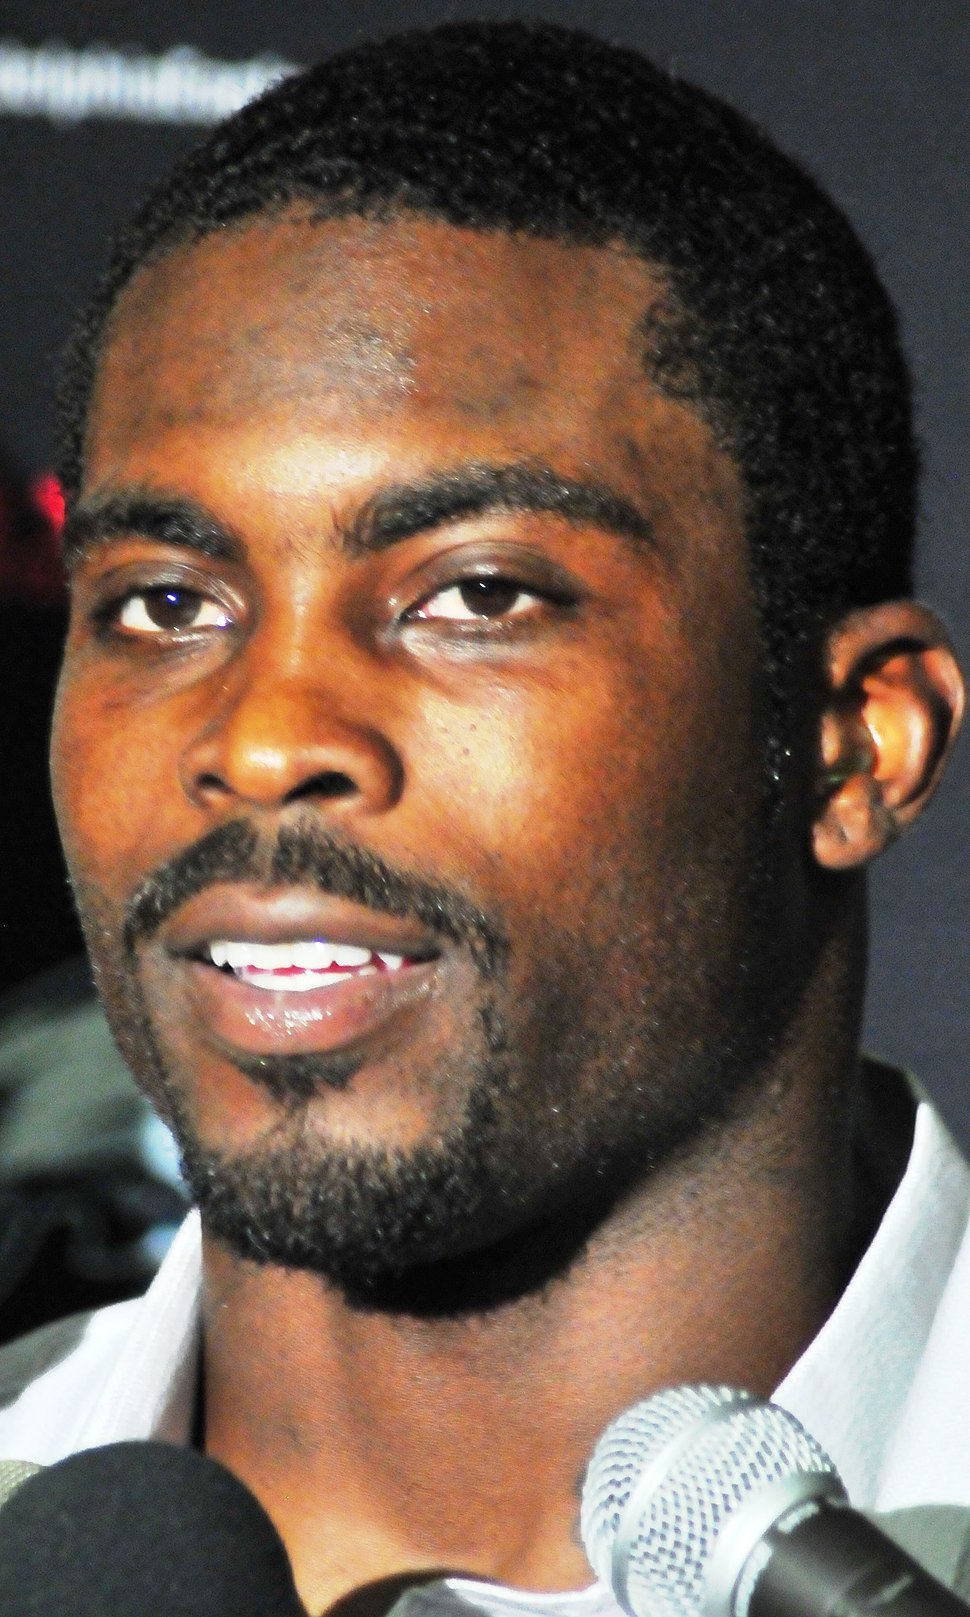 Michael-Vick Jets-vs-Eagles-Sept-3-2009 Post-Game-Interview (cropped)